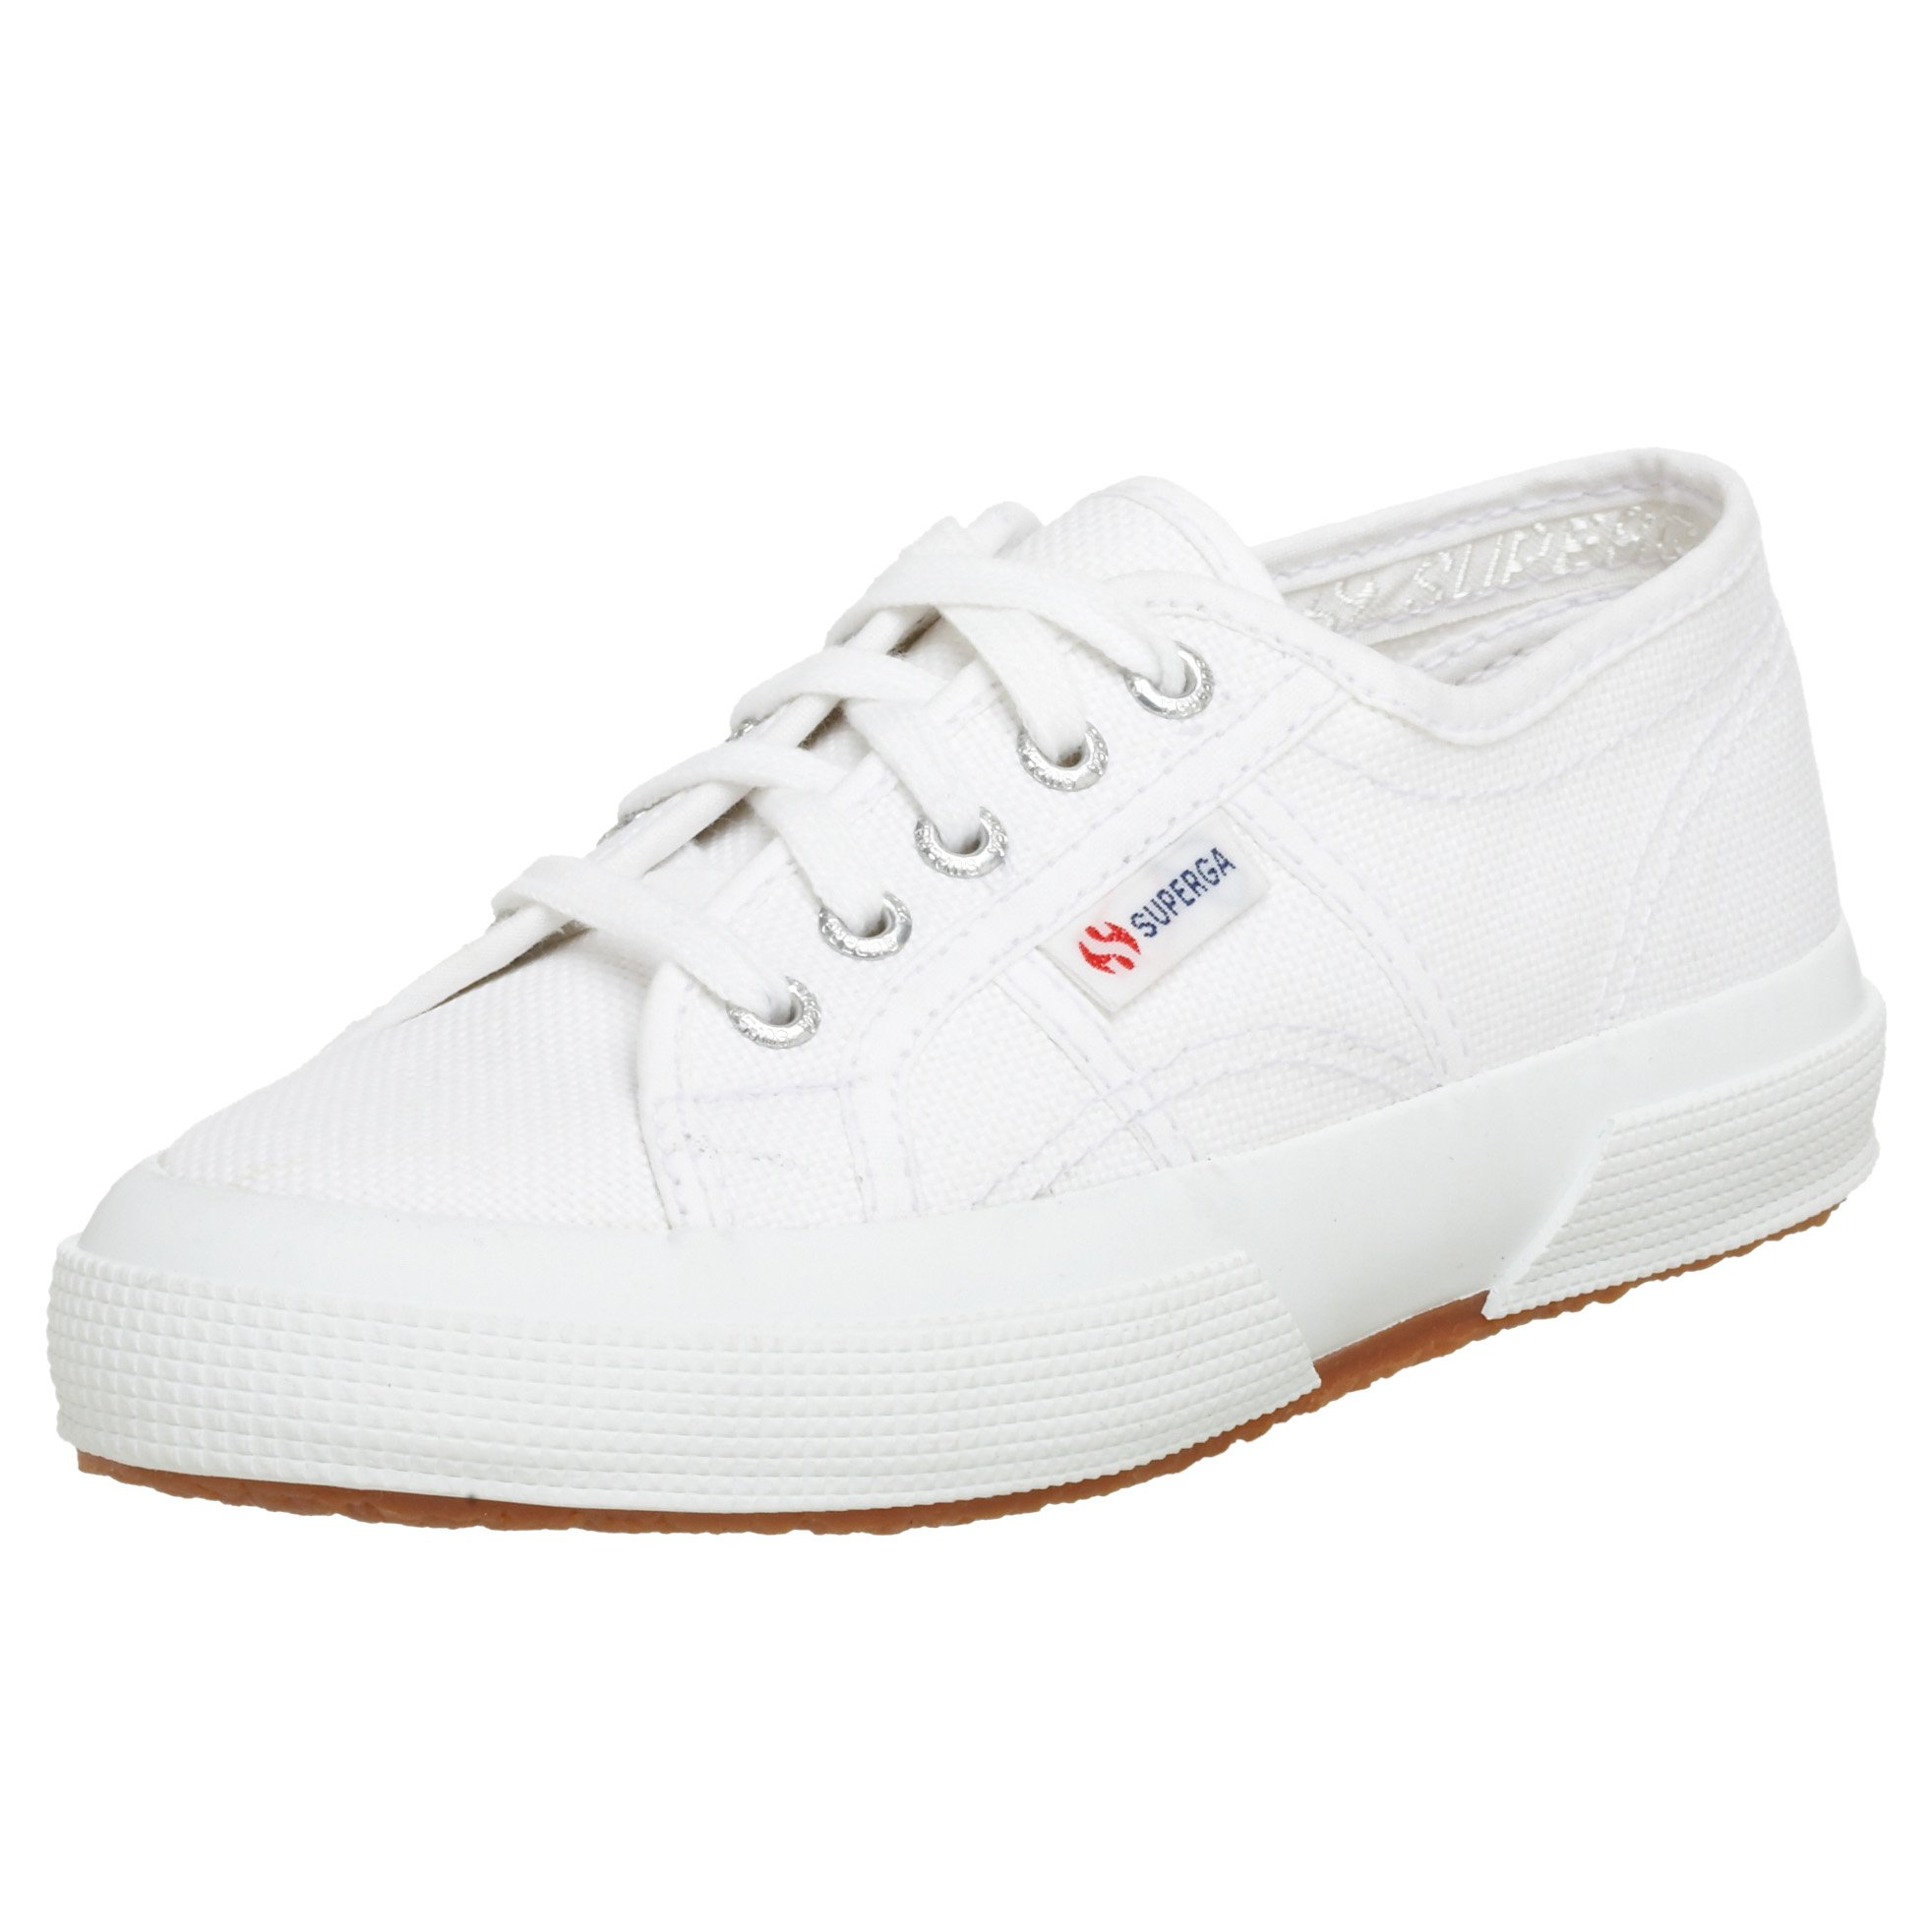 Superga Kids 2750 JCOT Classic Toddler//Lk